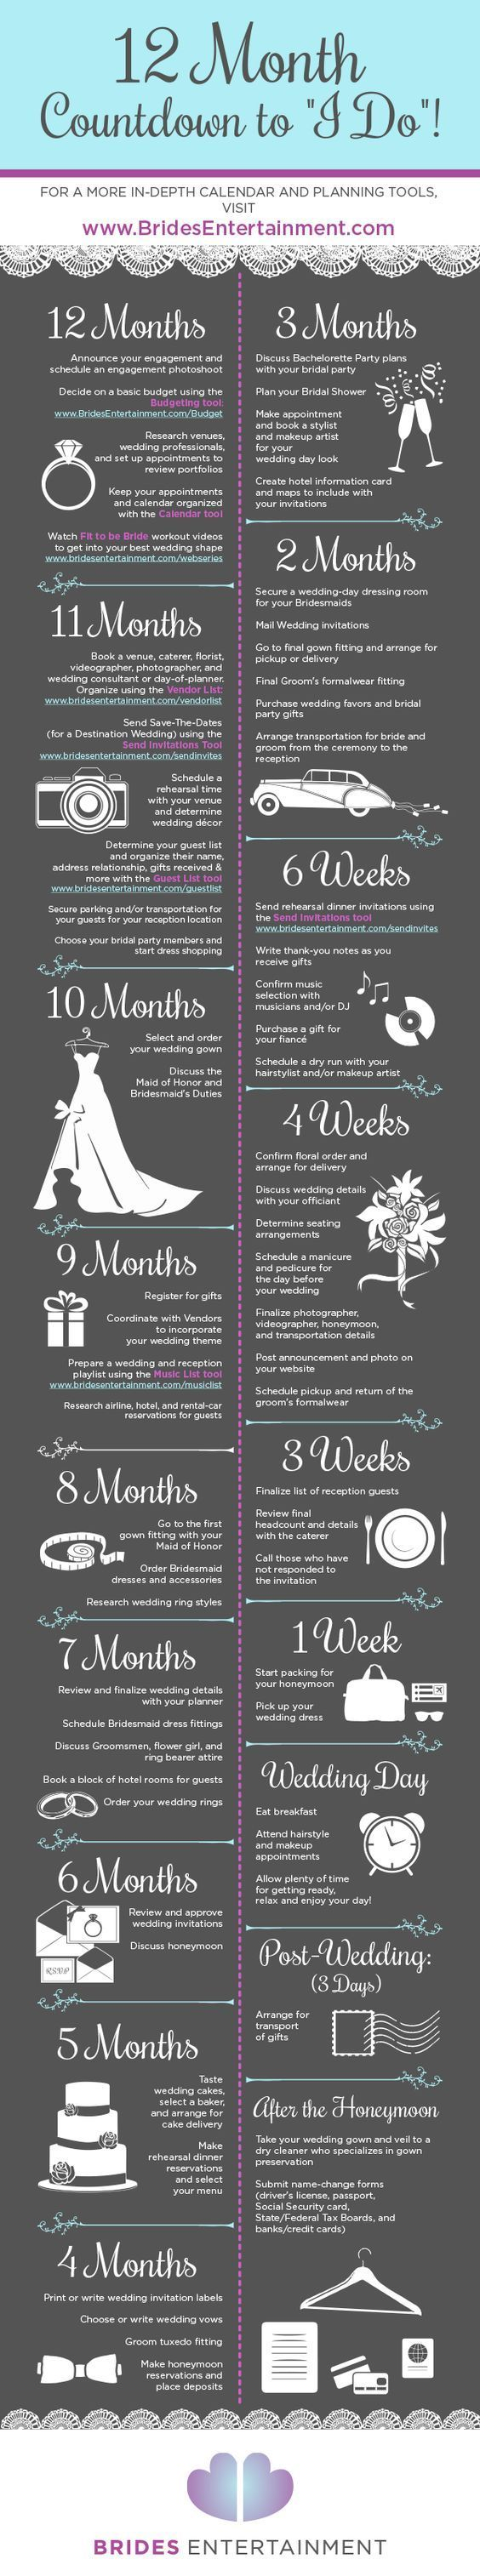 BRIDES!! PLEASE PLEASE PLEASE SCHEDULE YOUR HAIR AND MAKEUP AT LEAST 6 MONTHS IN ADVANCED!! THIS AVOIDS ANY ISSUES IF THERE NEEDS TO BE CHANGES, AND YOU AVOID THE POSSIBILITY OF THE ARTIST OF YOUR CHOICE BEING BOOKED!! PLEASE SCHEDULE THESE THINGS MUCH SOONER!!